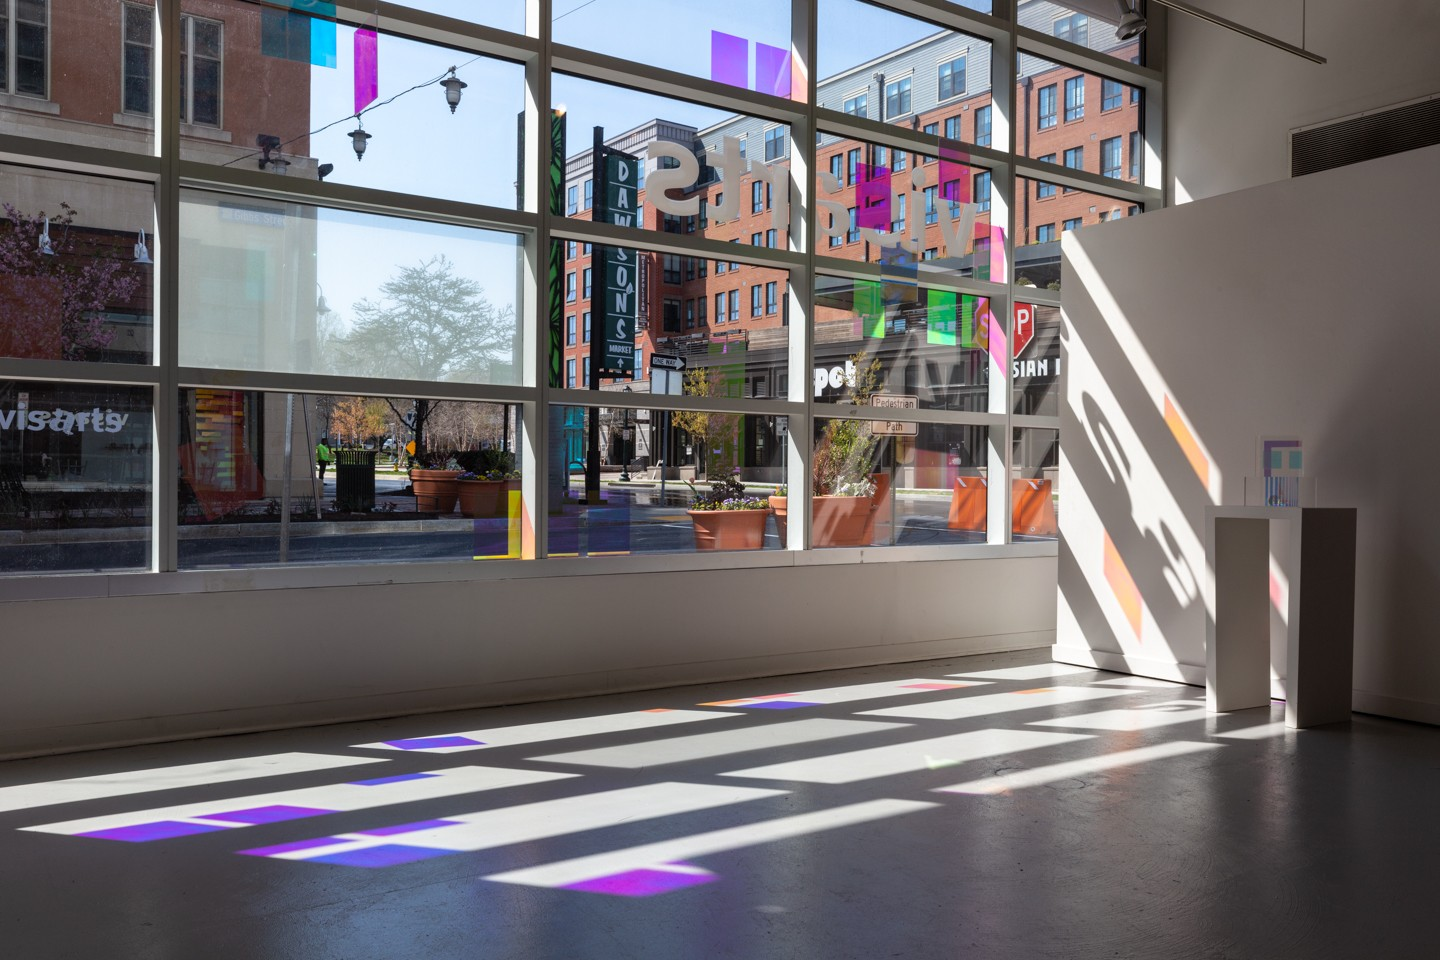 Colored film placed on the windows of the Gibbs Gallery at VisArts Center in Rockville, MD creates dramatically colored shapes on the floor as the light streams through in late afternoon.